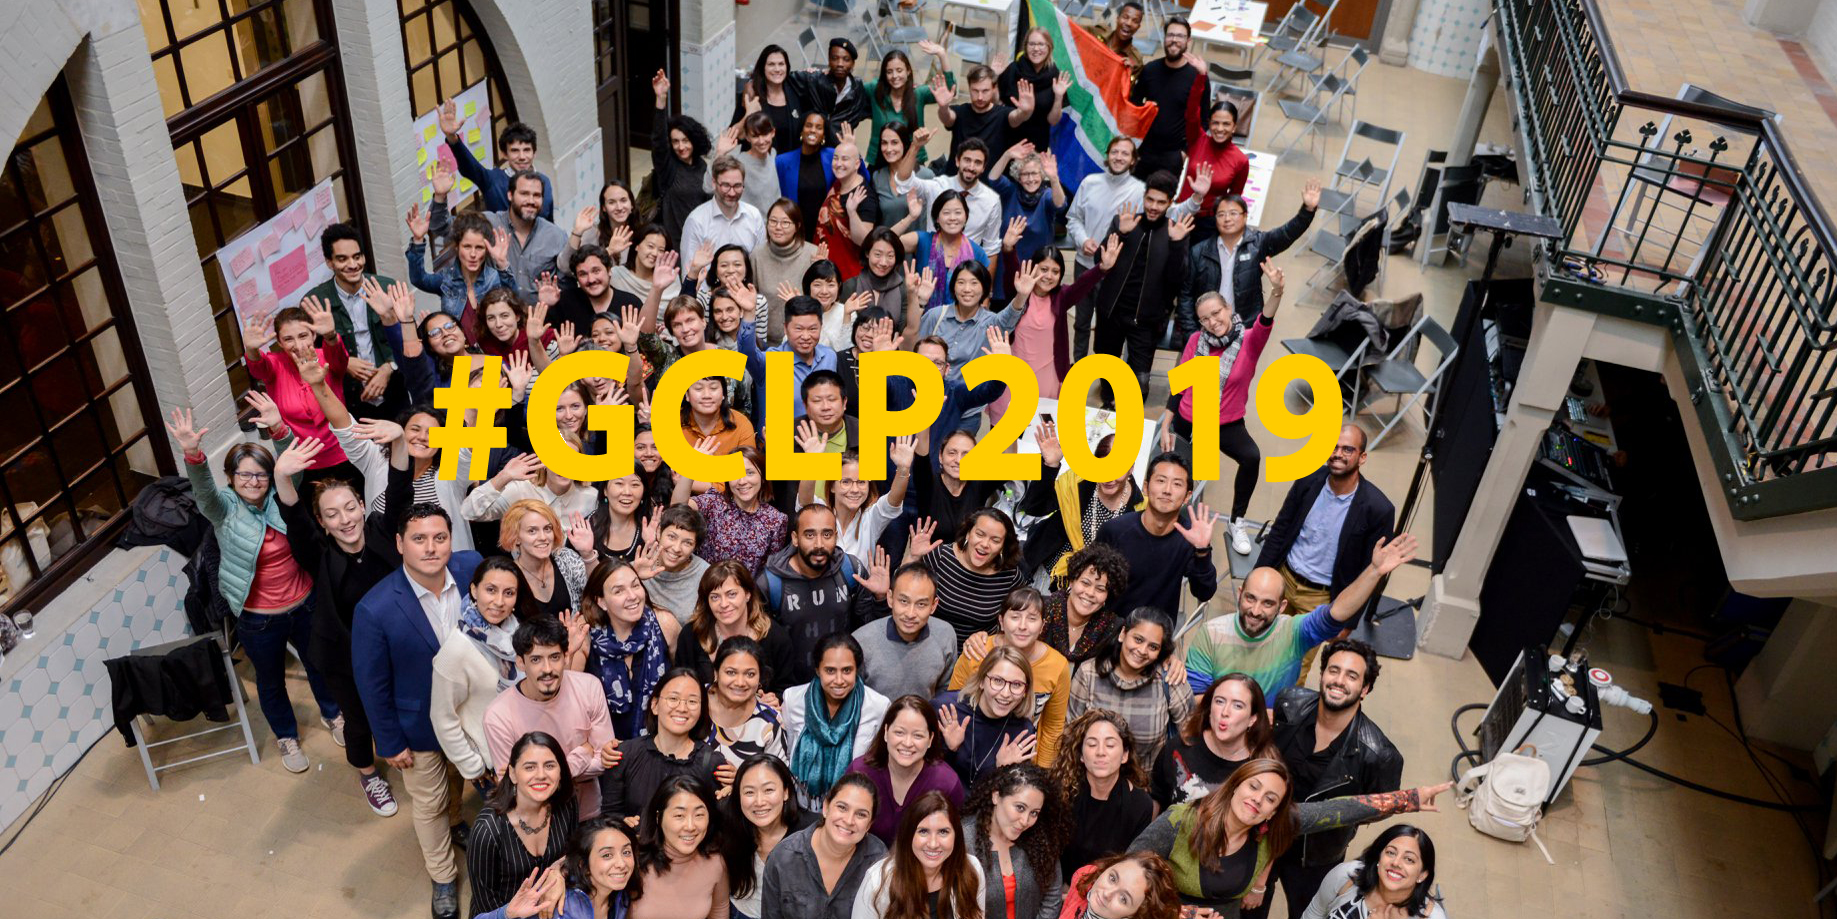 2016-2019: The Global Cultural Leadership Programme